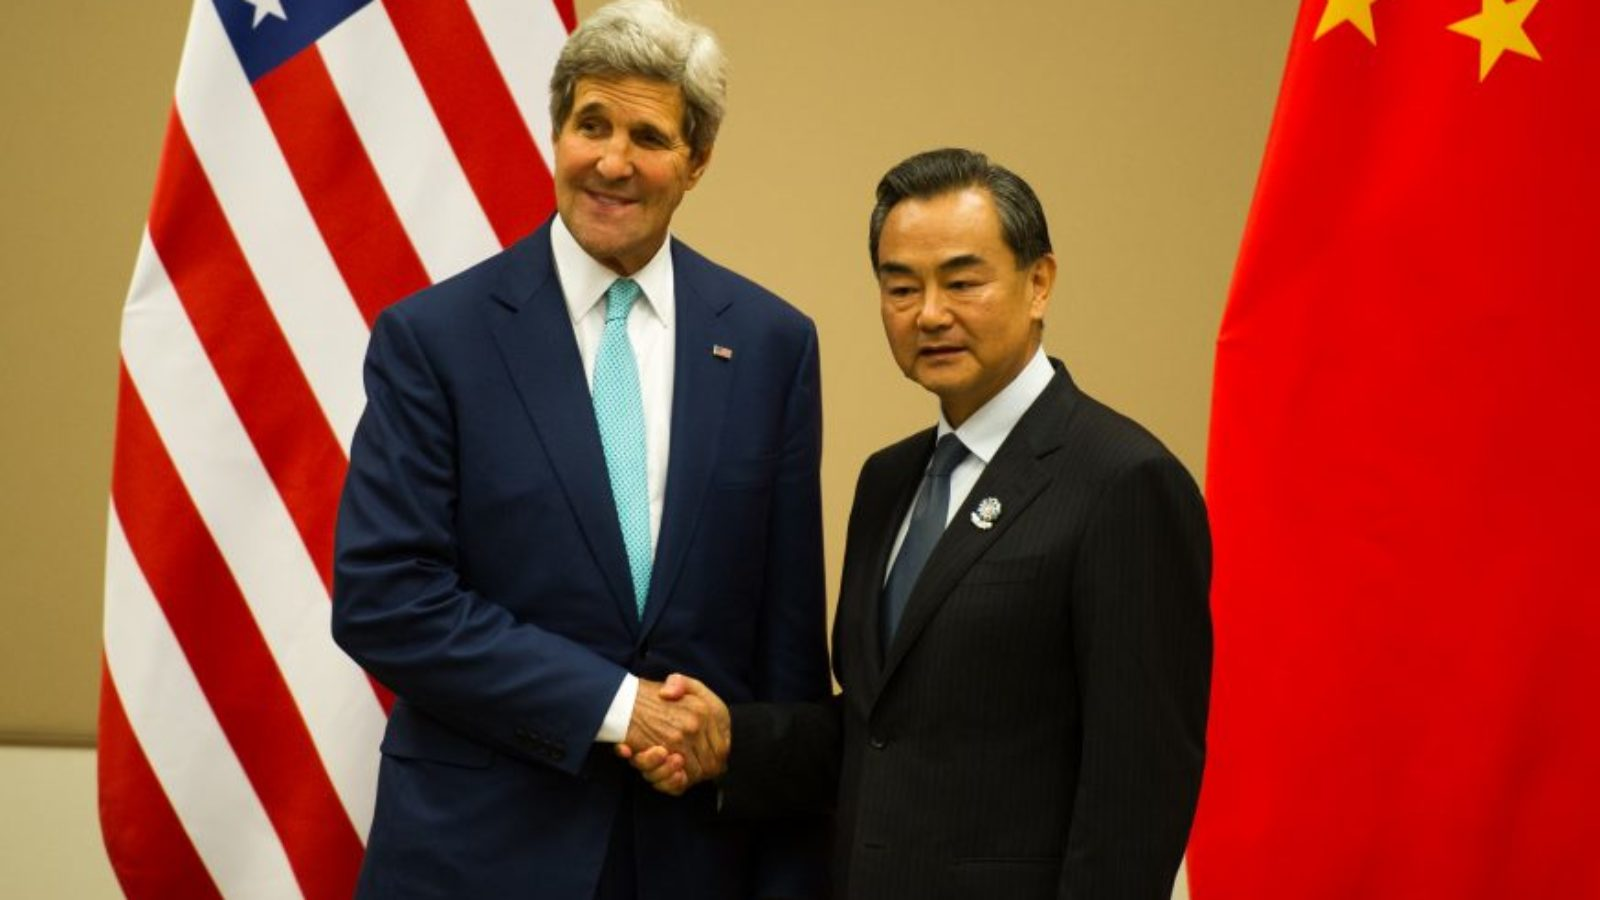 John Kerry and Wang Yi shaking hands